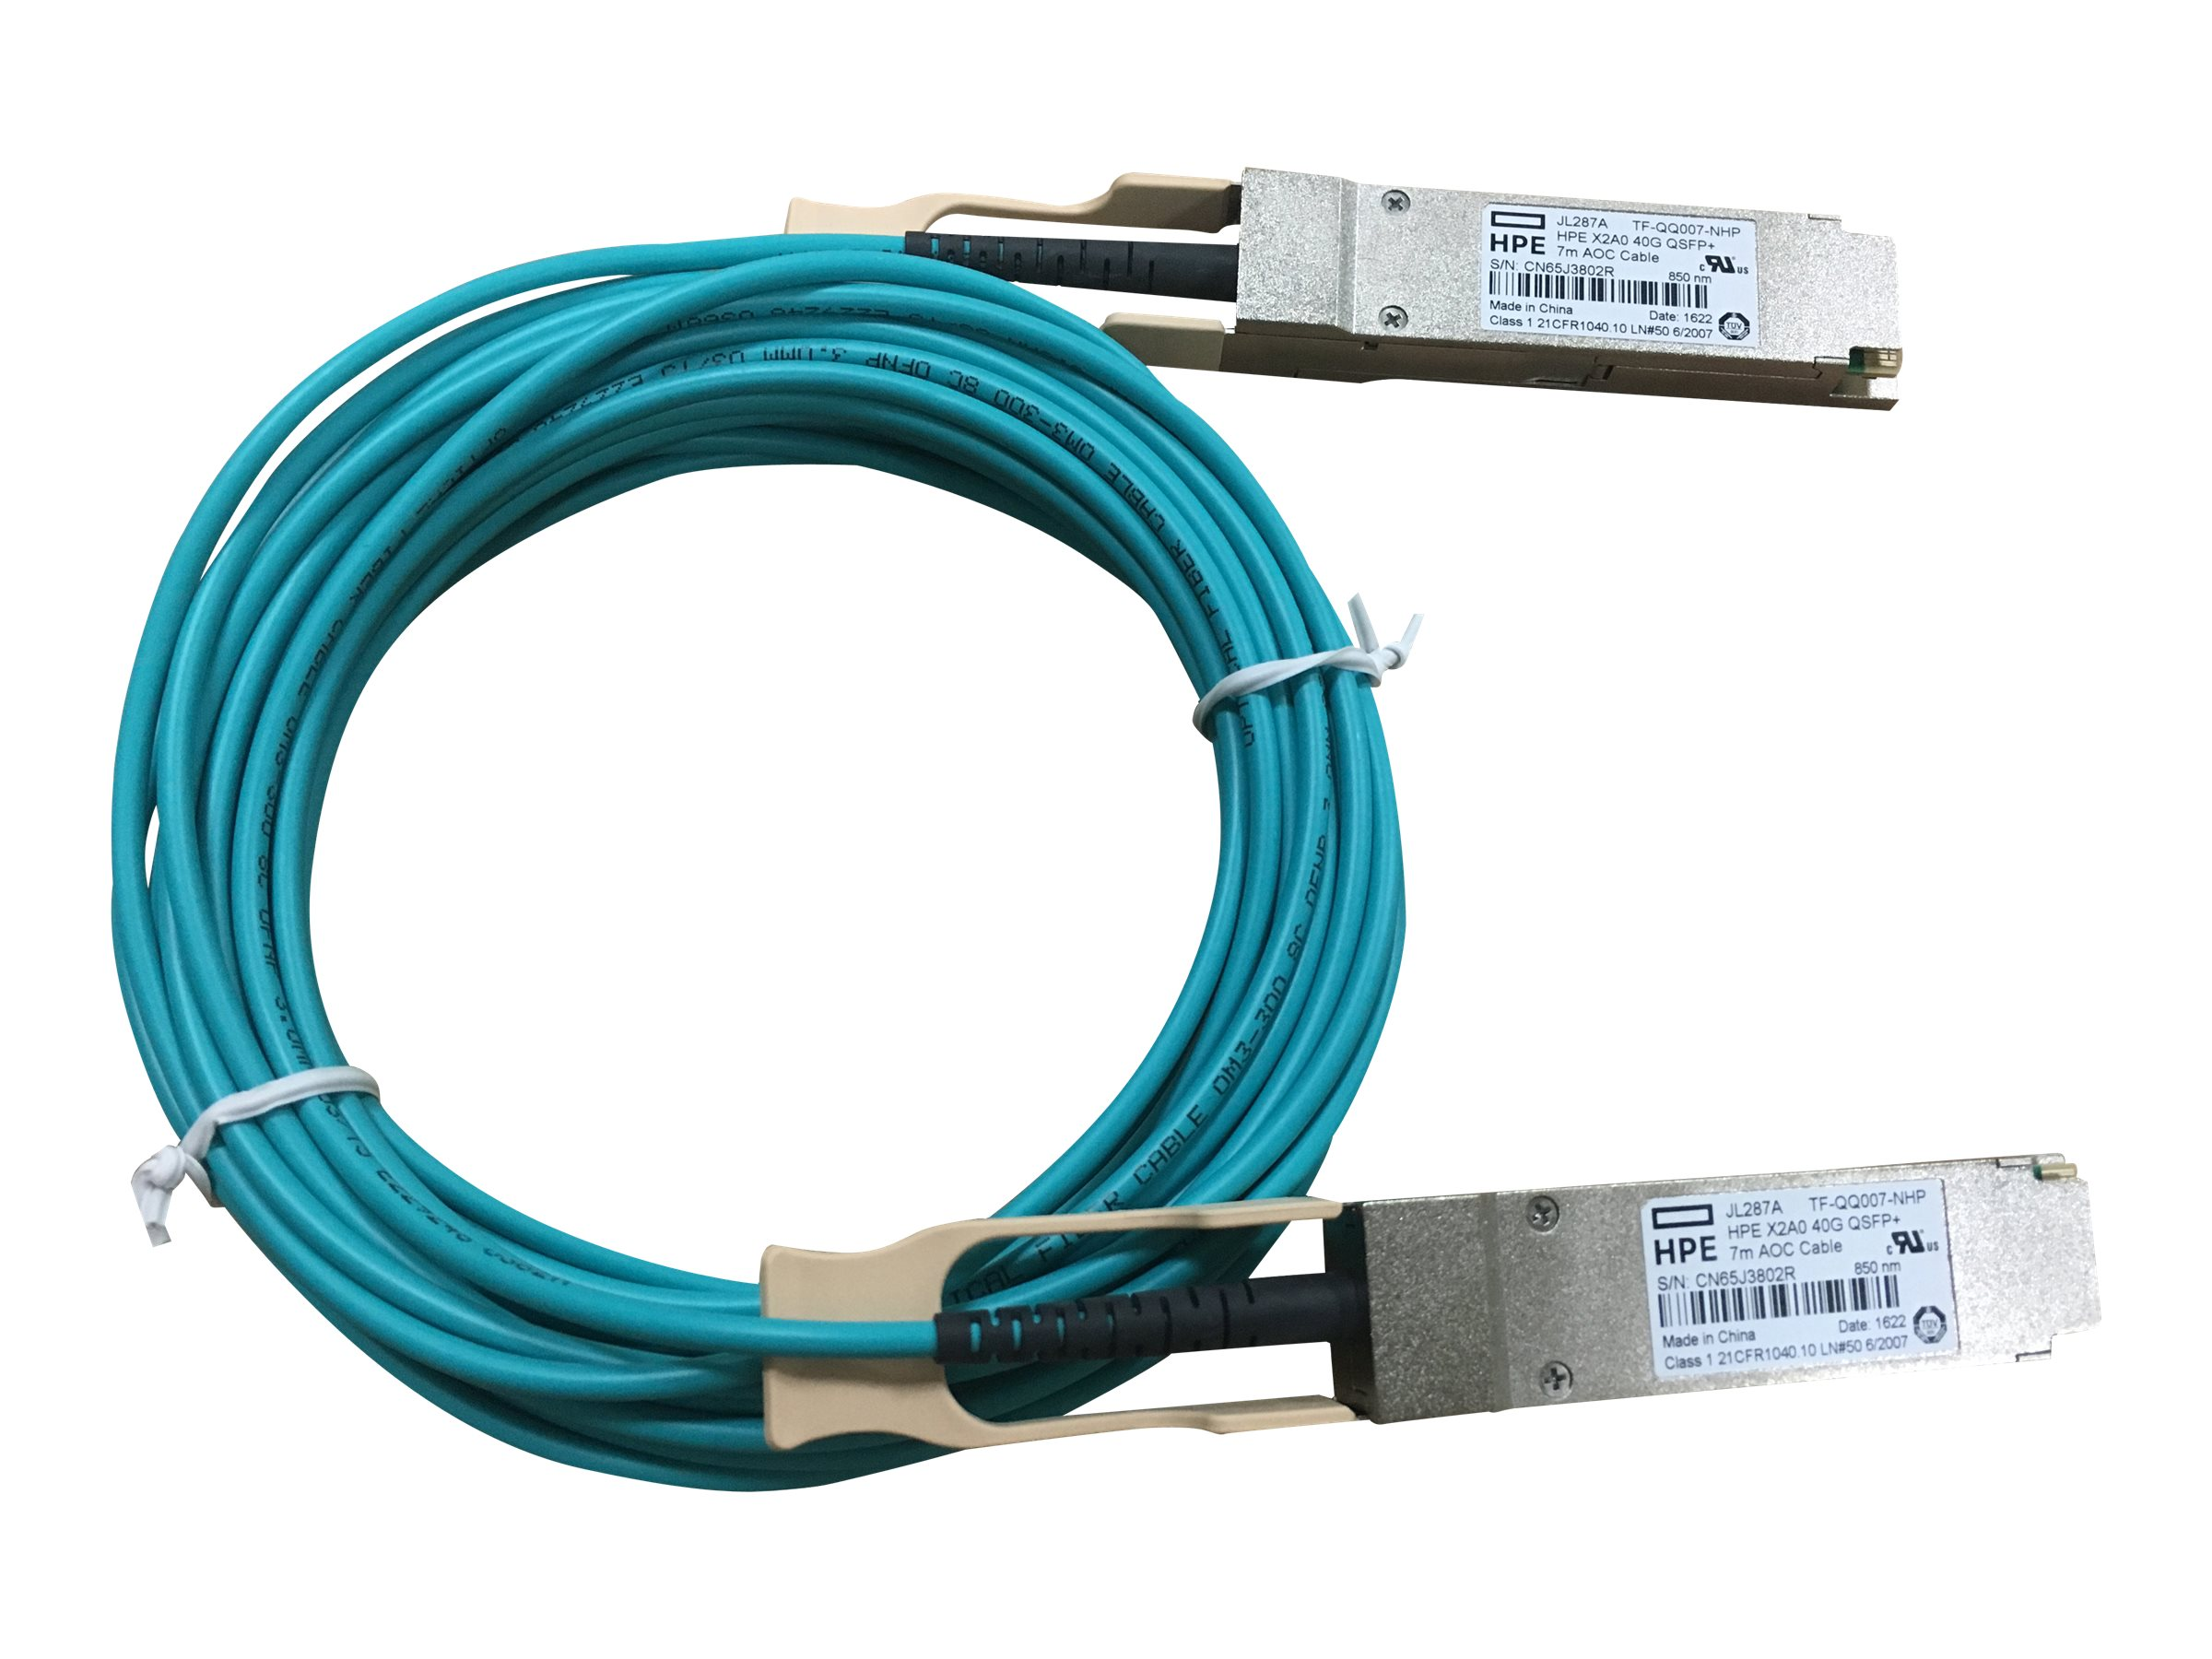 HPE 40G QSFP+ to QSFP+ Active Optical Cable, 7m, JL287A